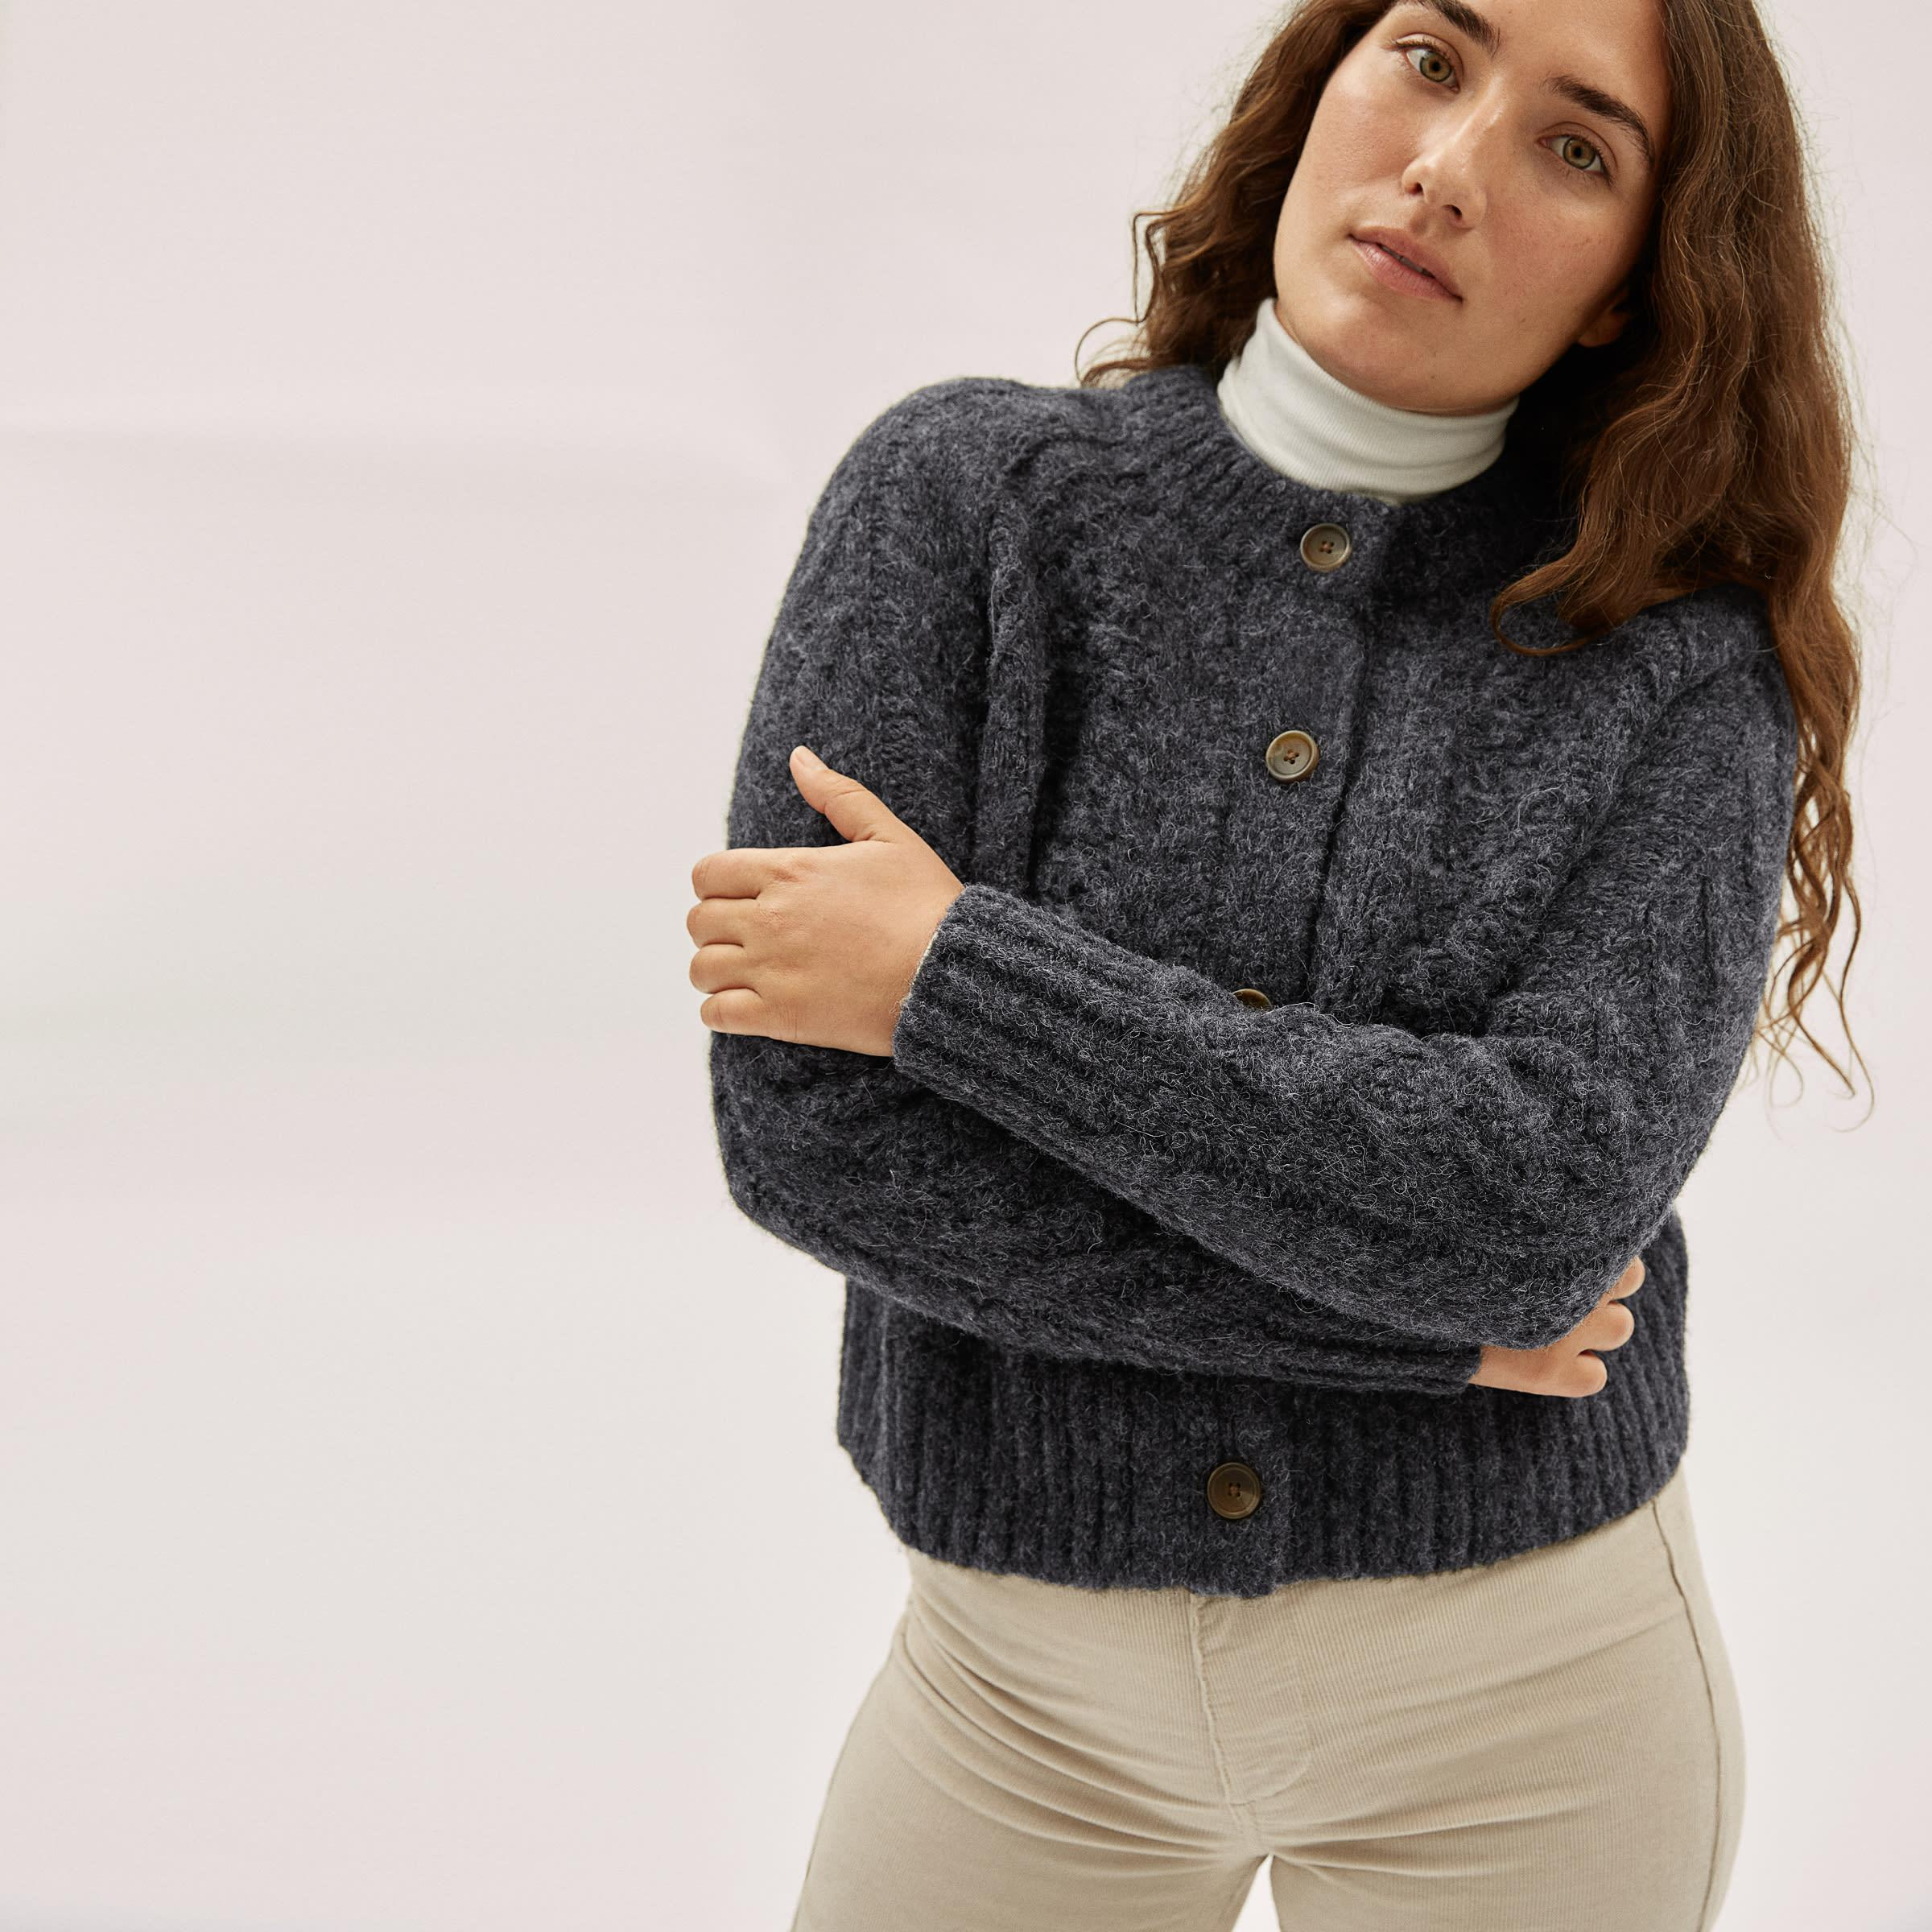 The Cloud Cable Cardigan 1